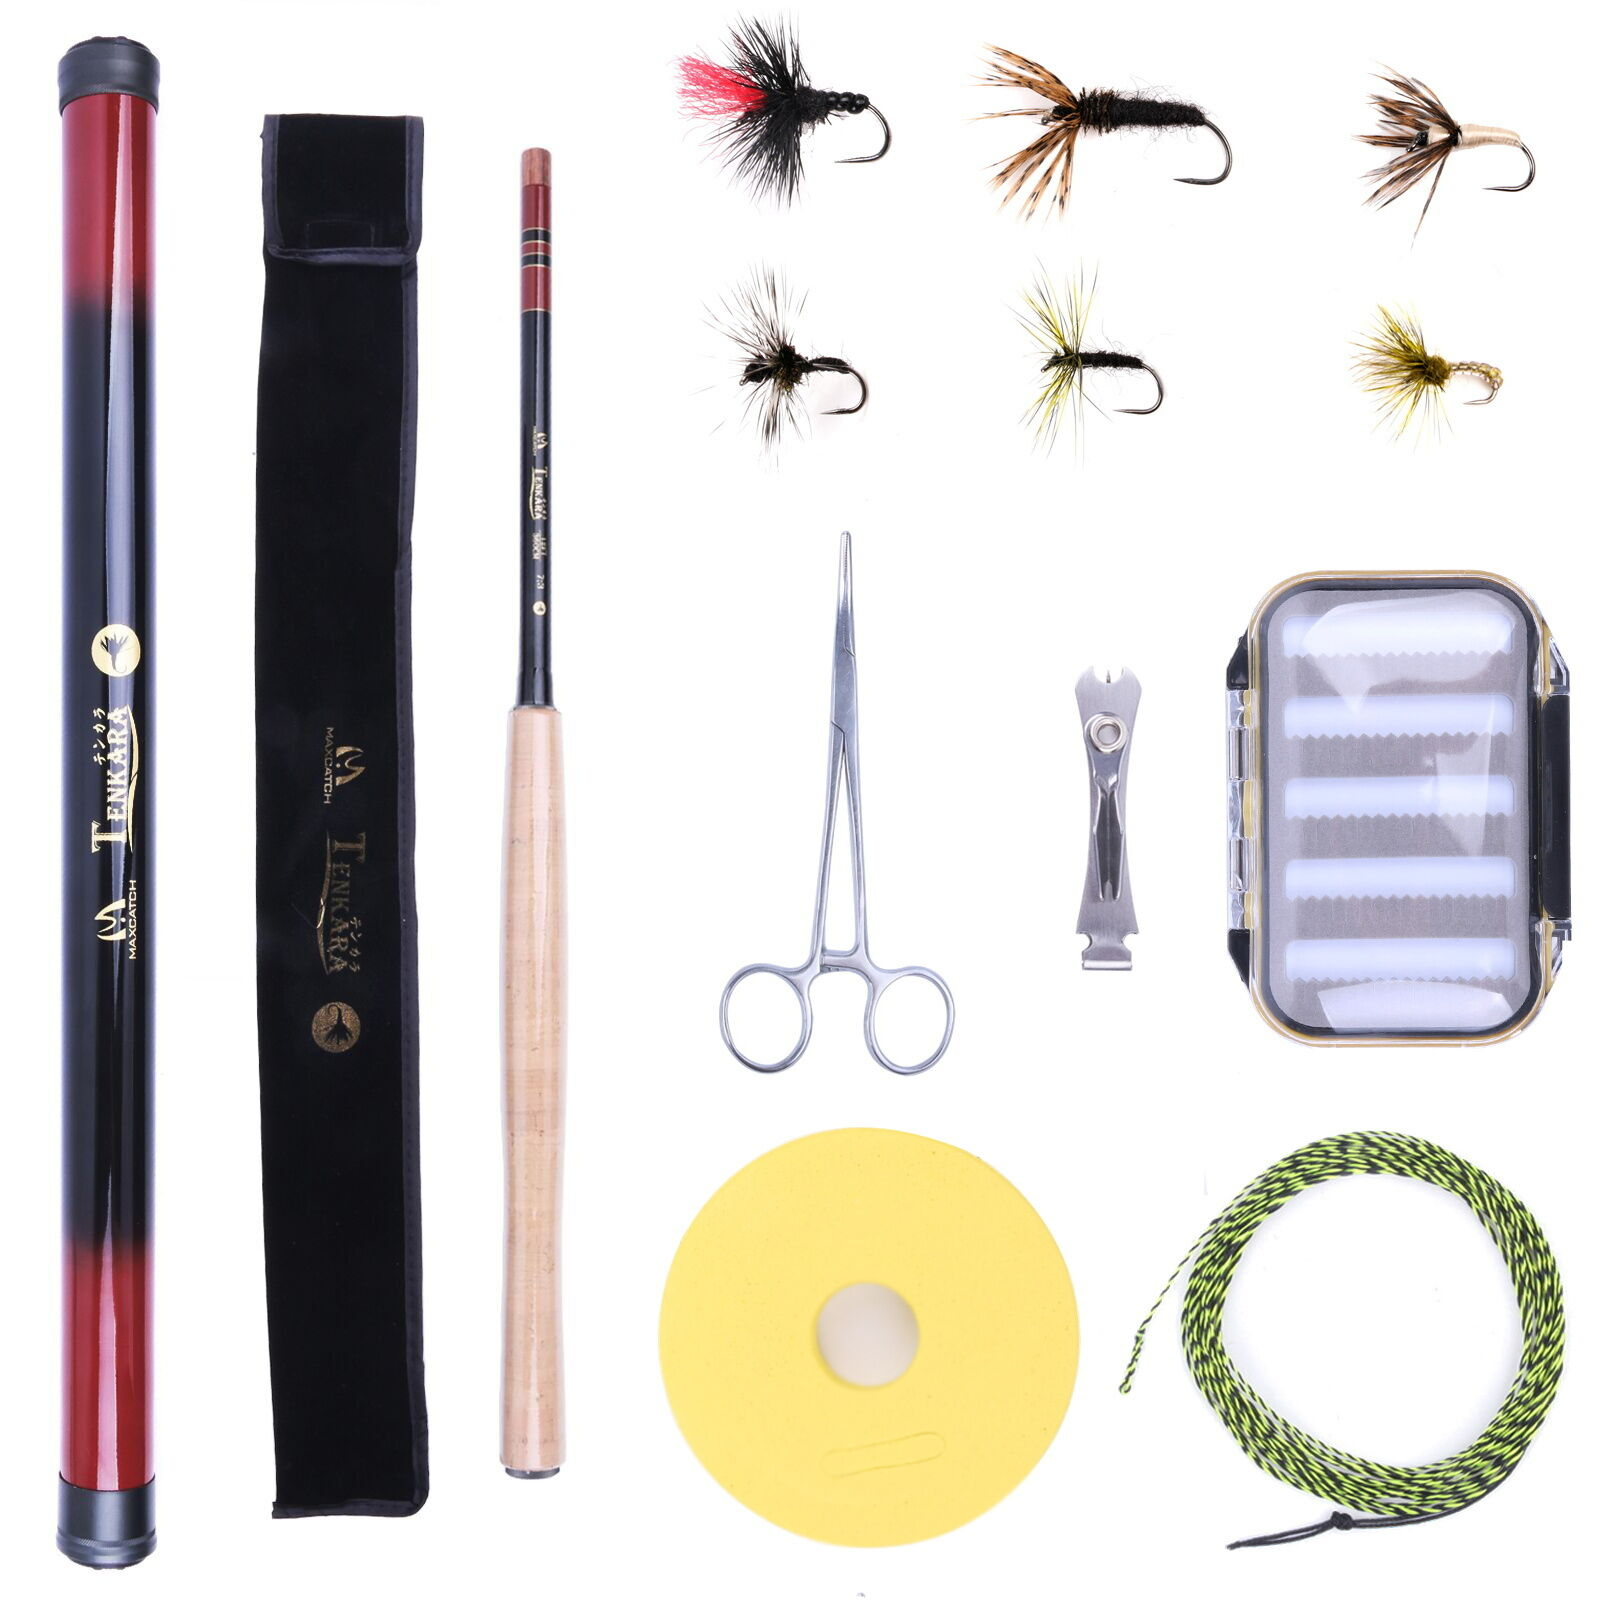 Tenkara Fishing Outfit 12FT Fly Rod Combo Tenkara Fishing Pole&Line&Box&Flies